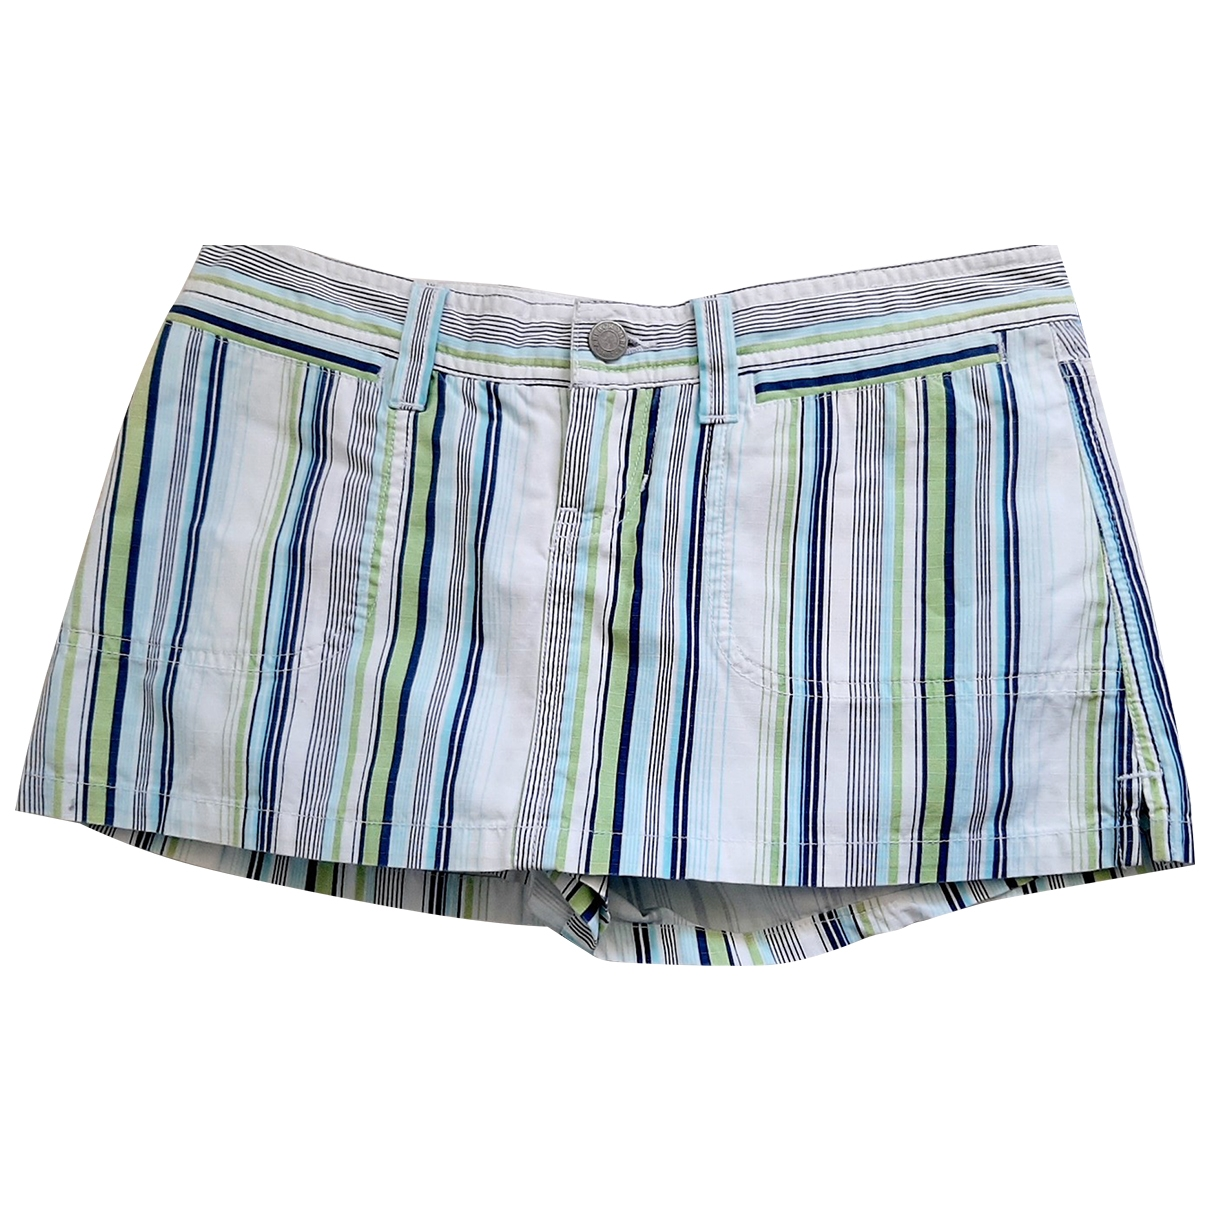 Abercrombie & Fitch \N Multicolour Cotton skirt for Women 0 0-5